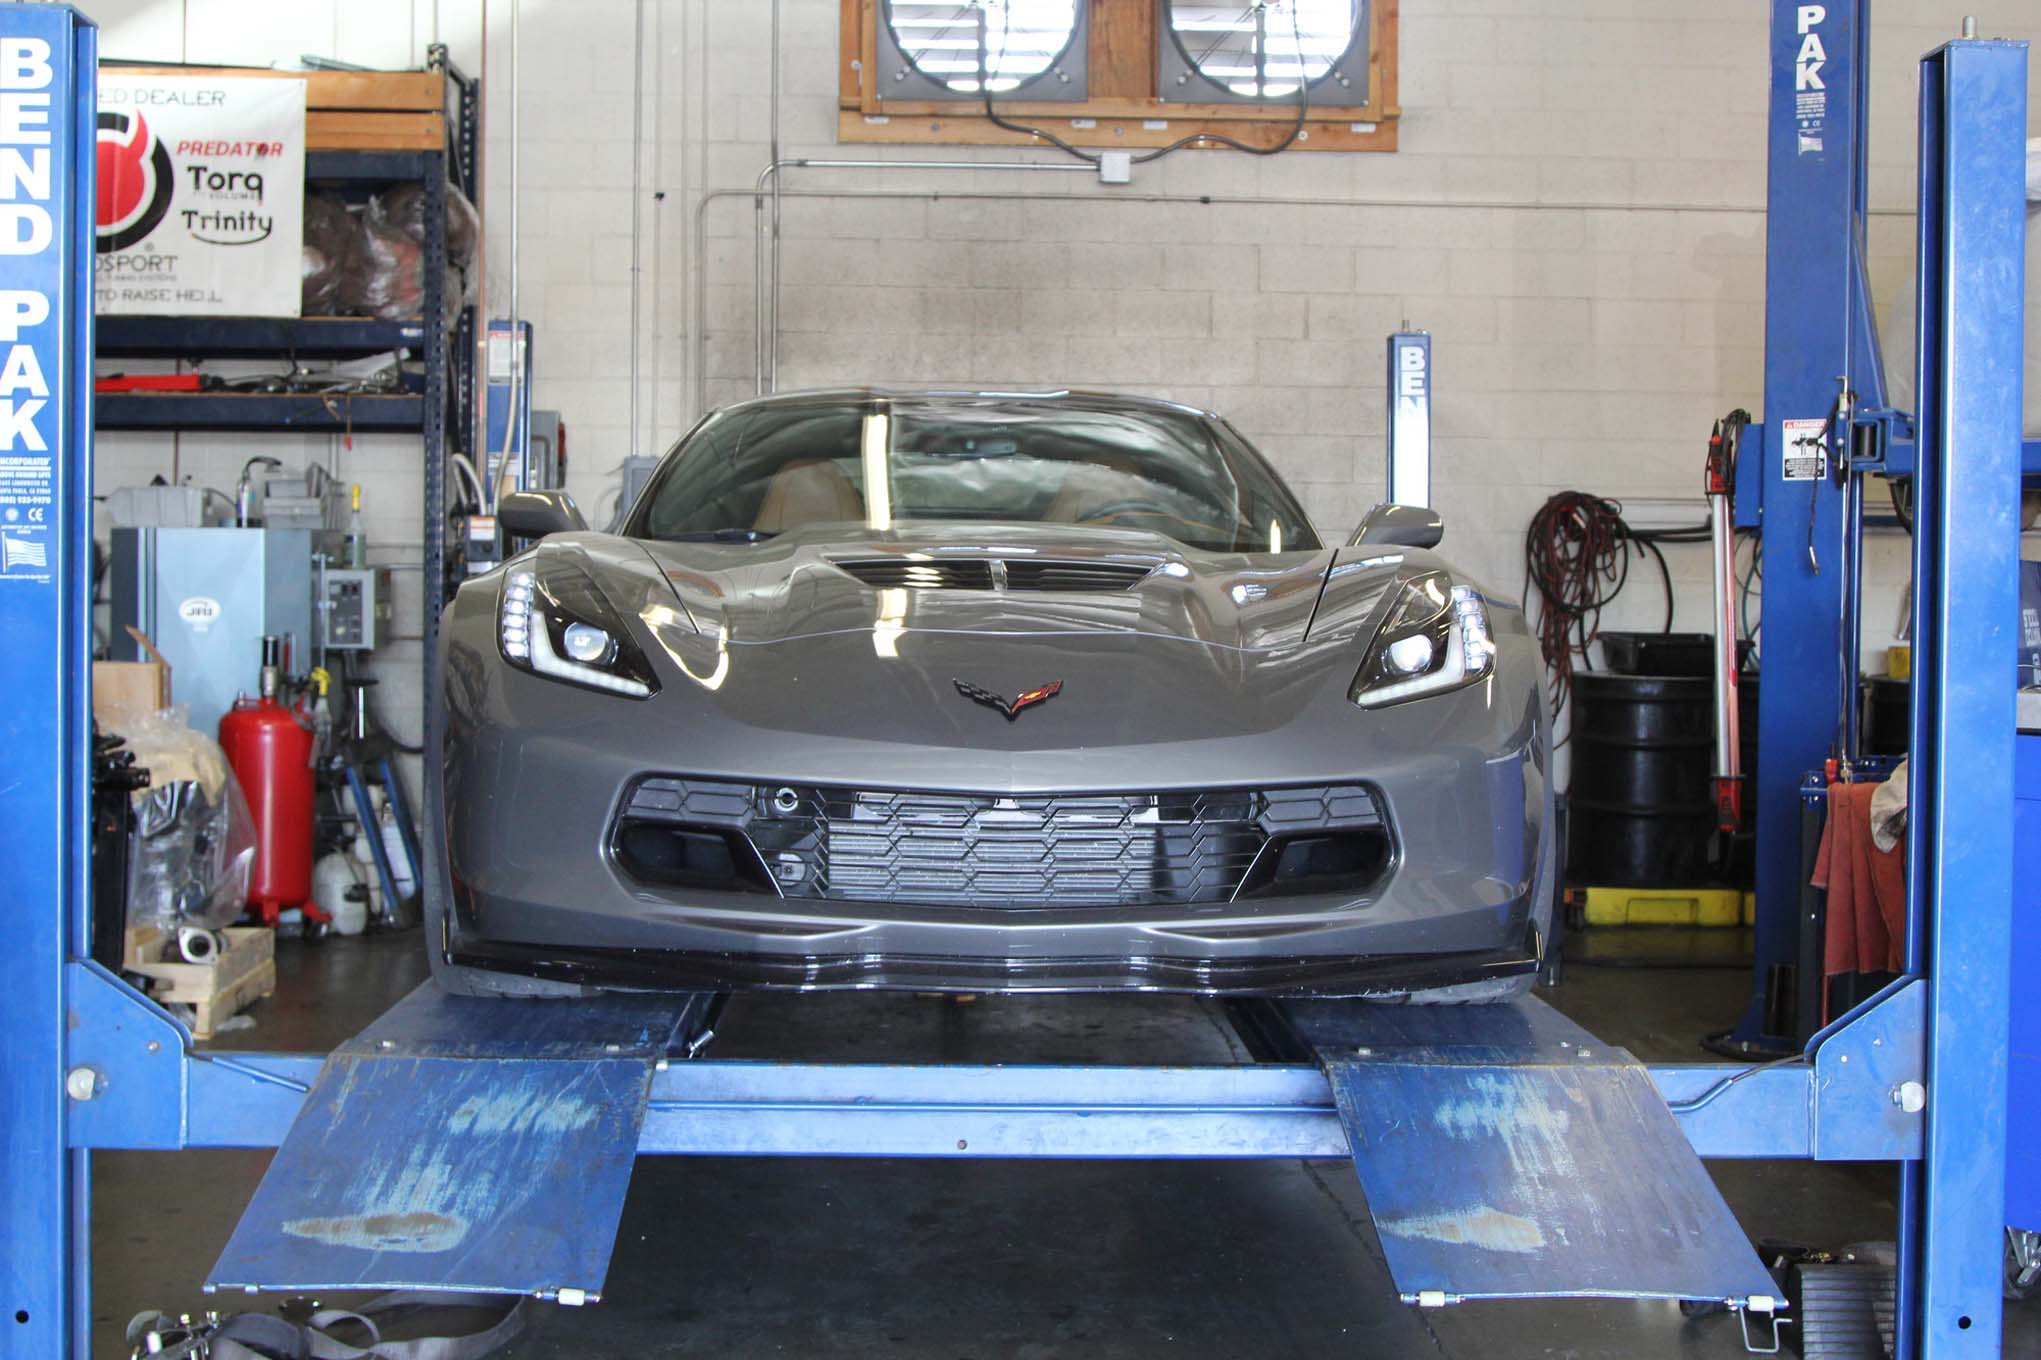 Dyno runs in new cars are tricky, requiring a thorough knowledge of the various modes and traction nannies—so you can turn them all off. Eddie Rios at Addiction Motorsports put the Z06 in Track mode, then held the traction-control button for 10 seconds until all the Performance Traction Management (PTM) was off. Then he revved it up and recorded 570hp at the rear wheels..